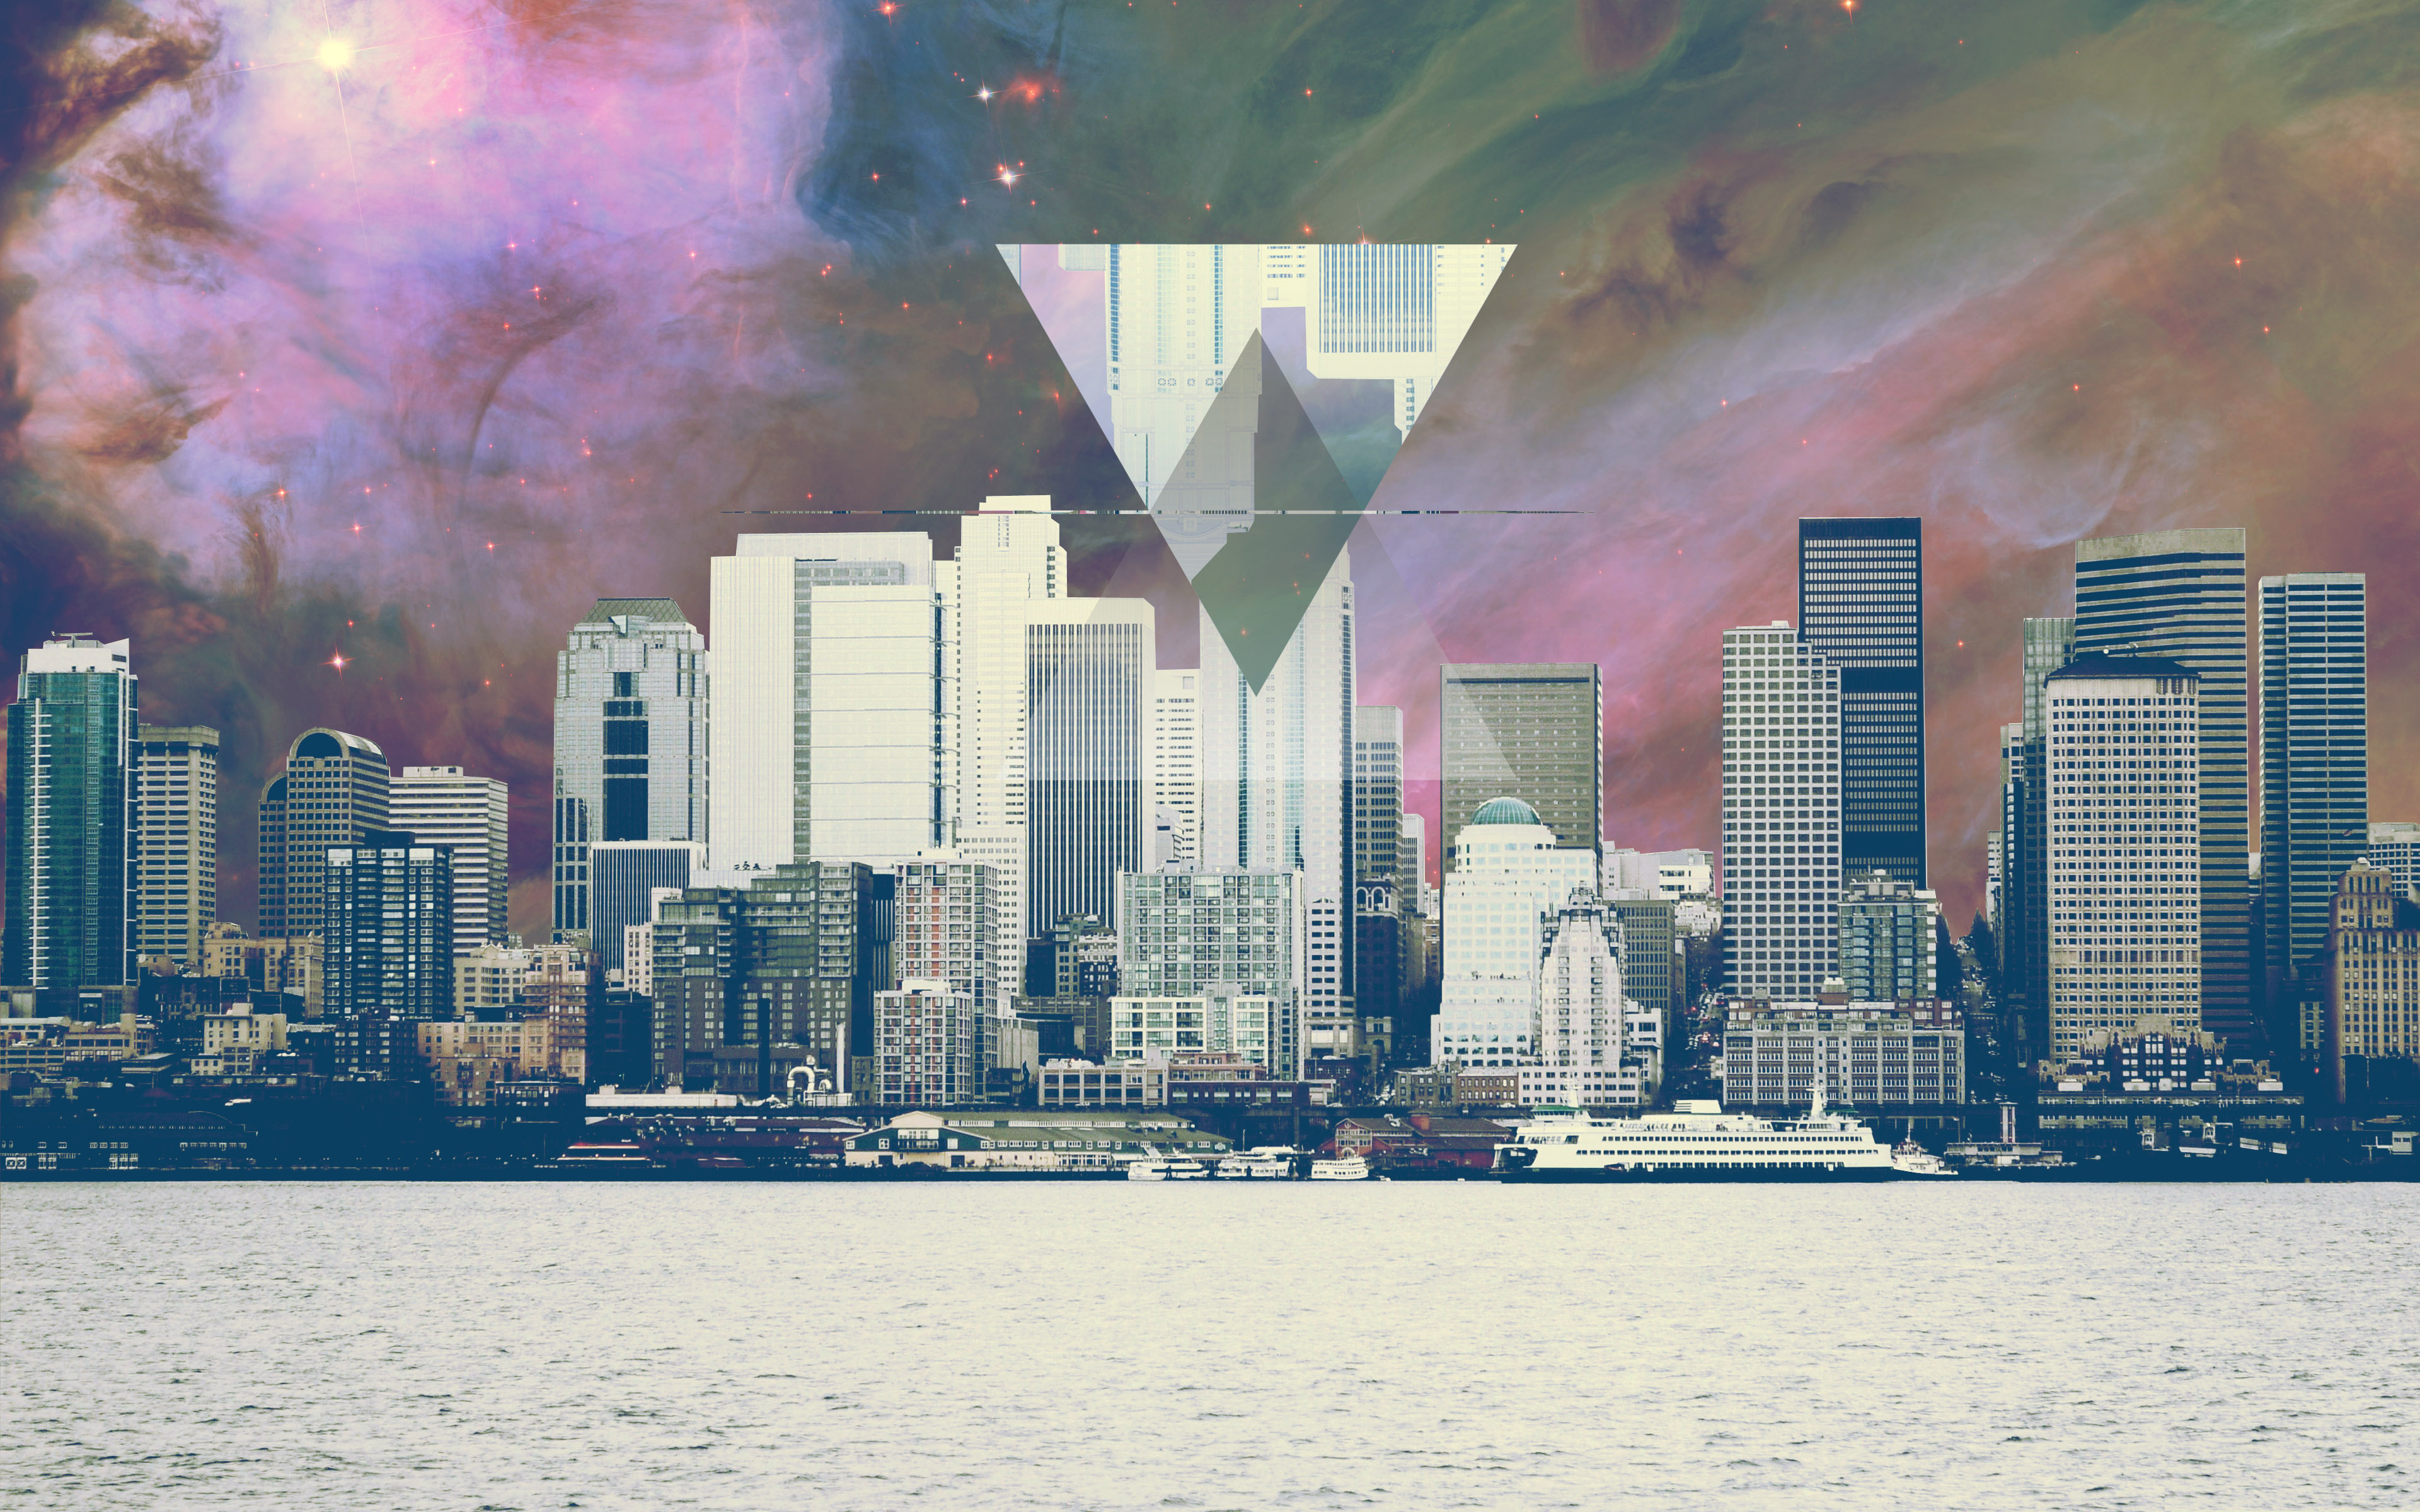 abstract laptop backgrounds with hipster style city